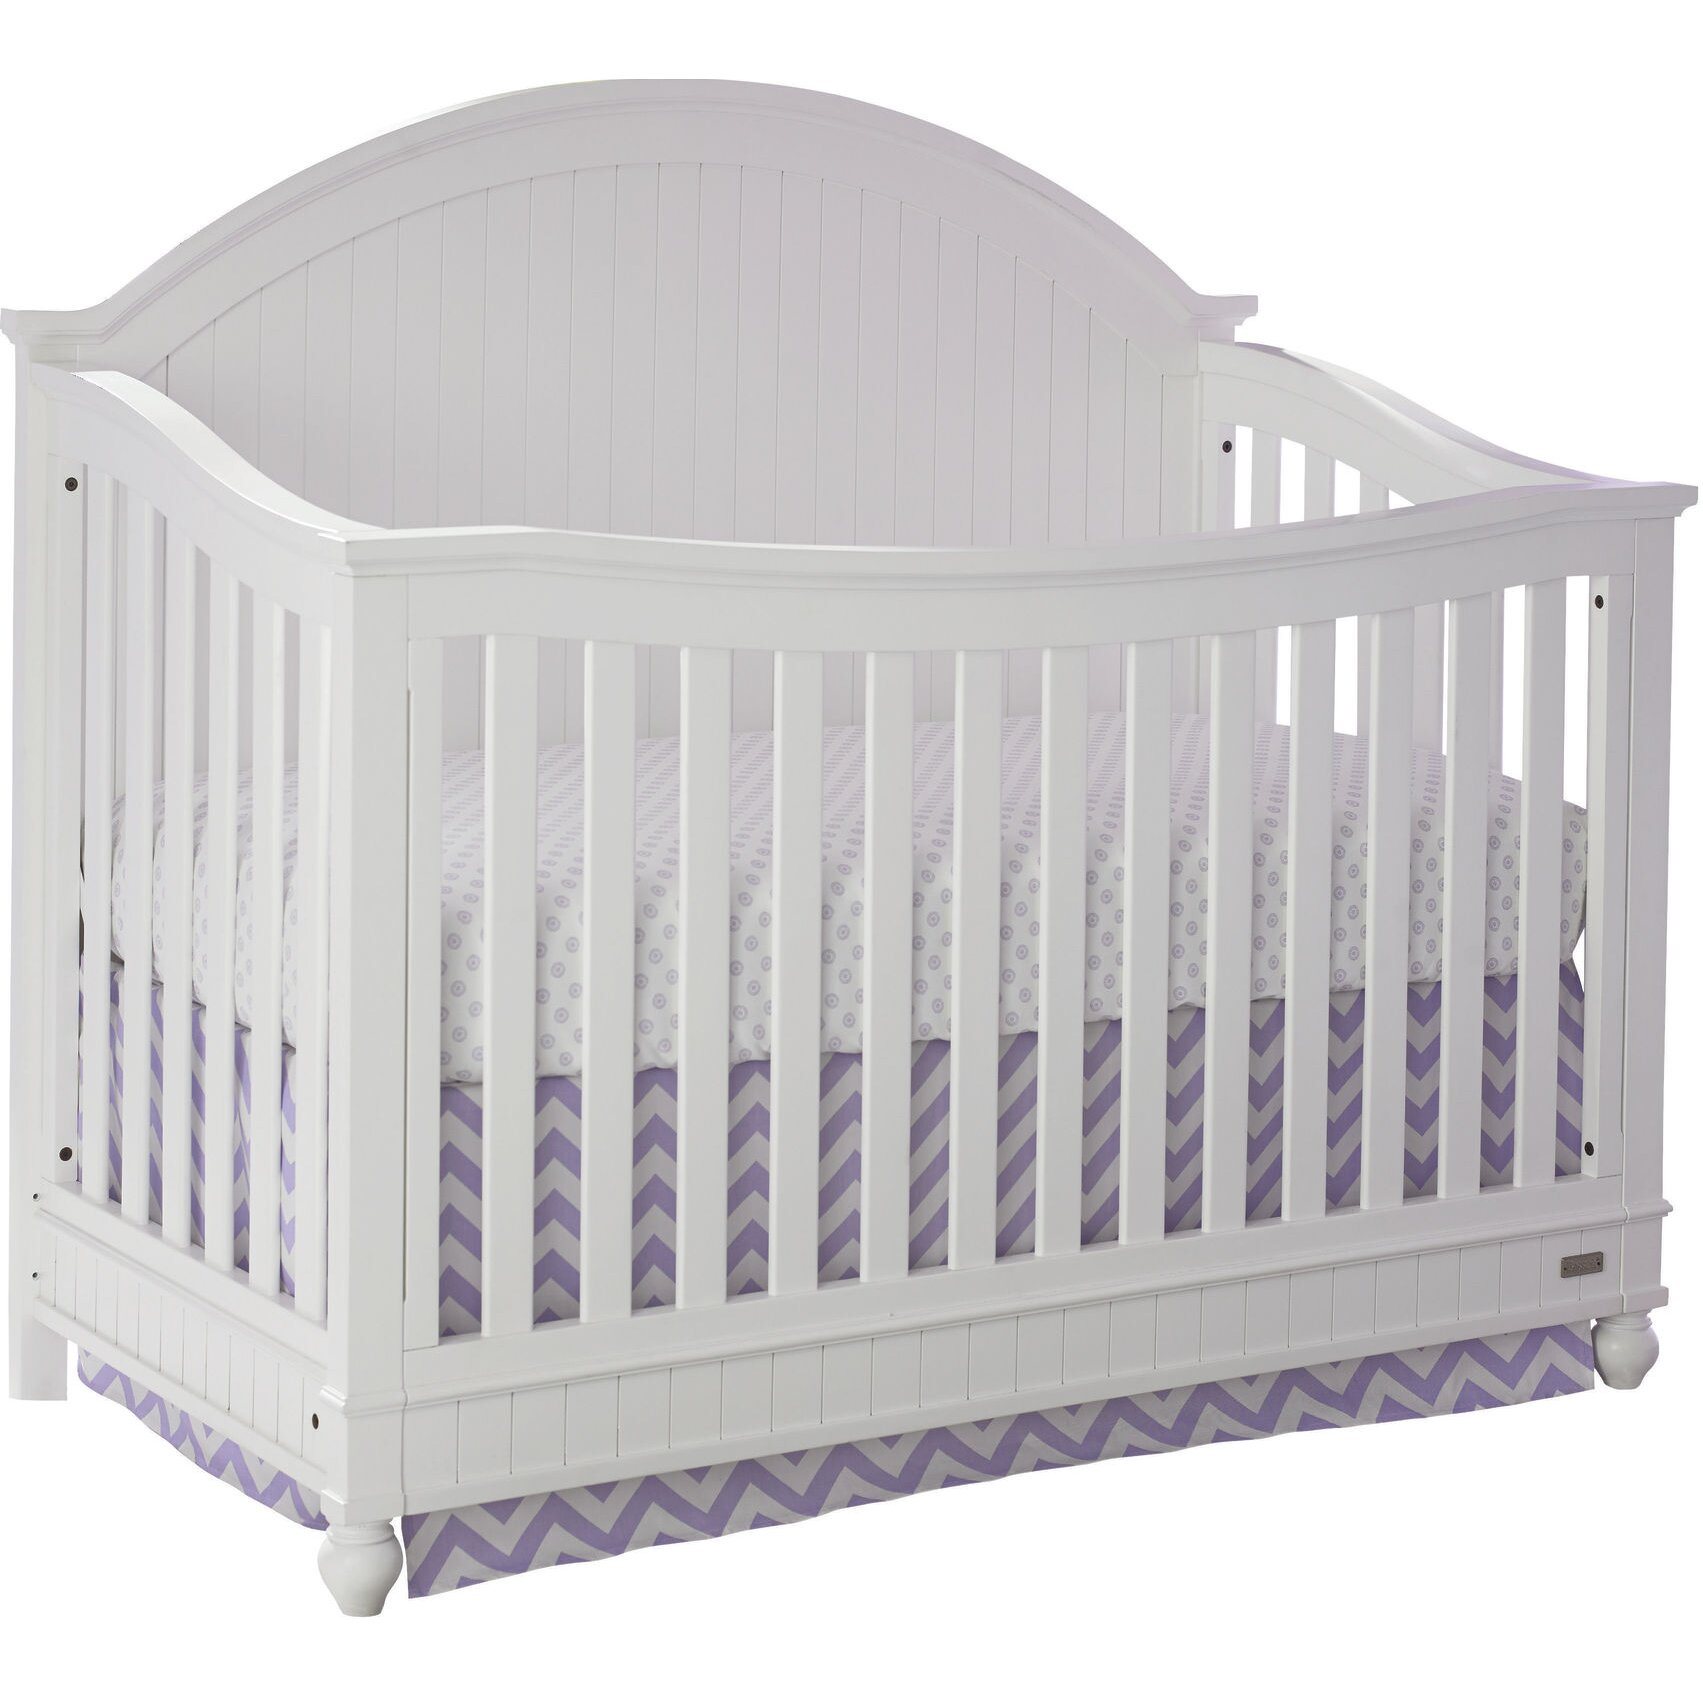 Baby cribs regulations canada - Bassett Baby Somerset Convertible Crib